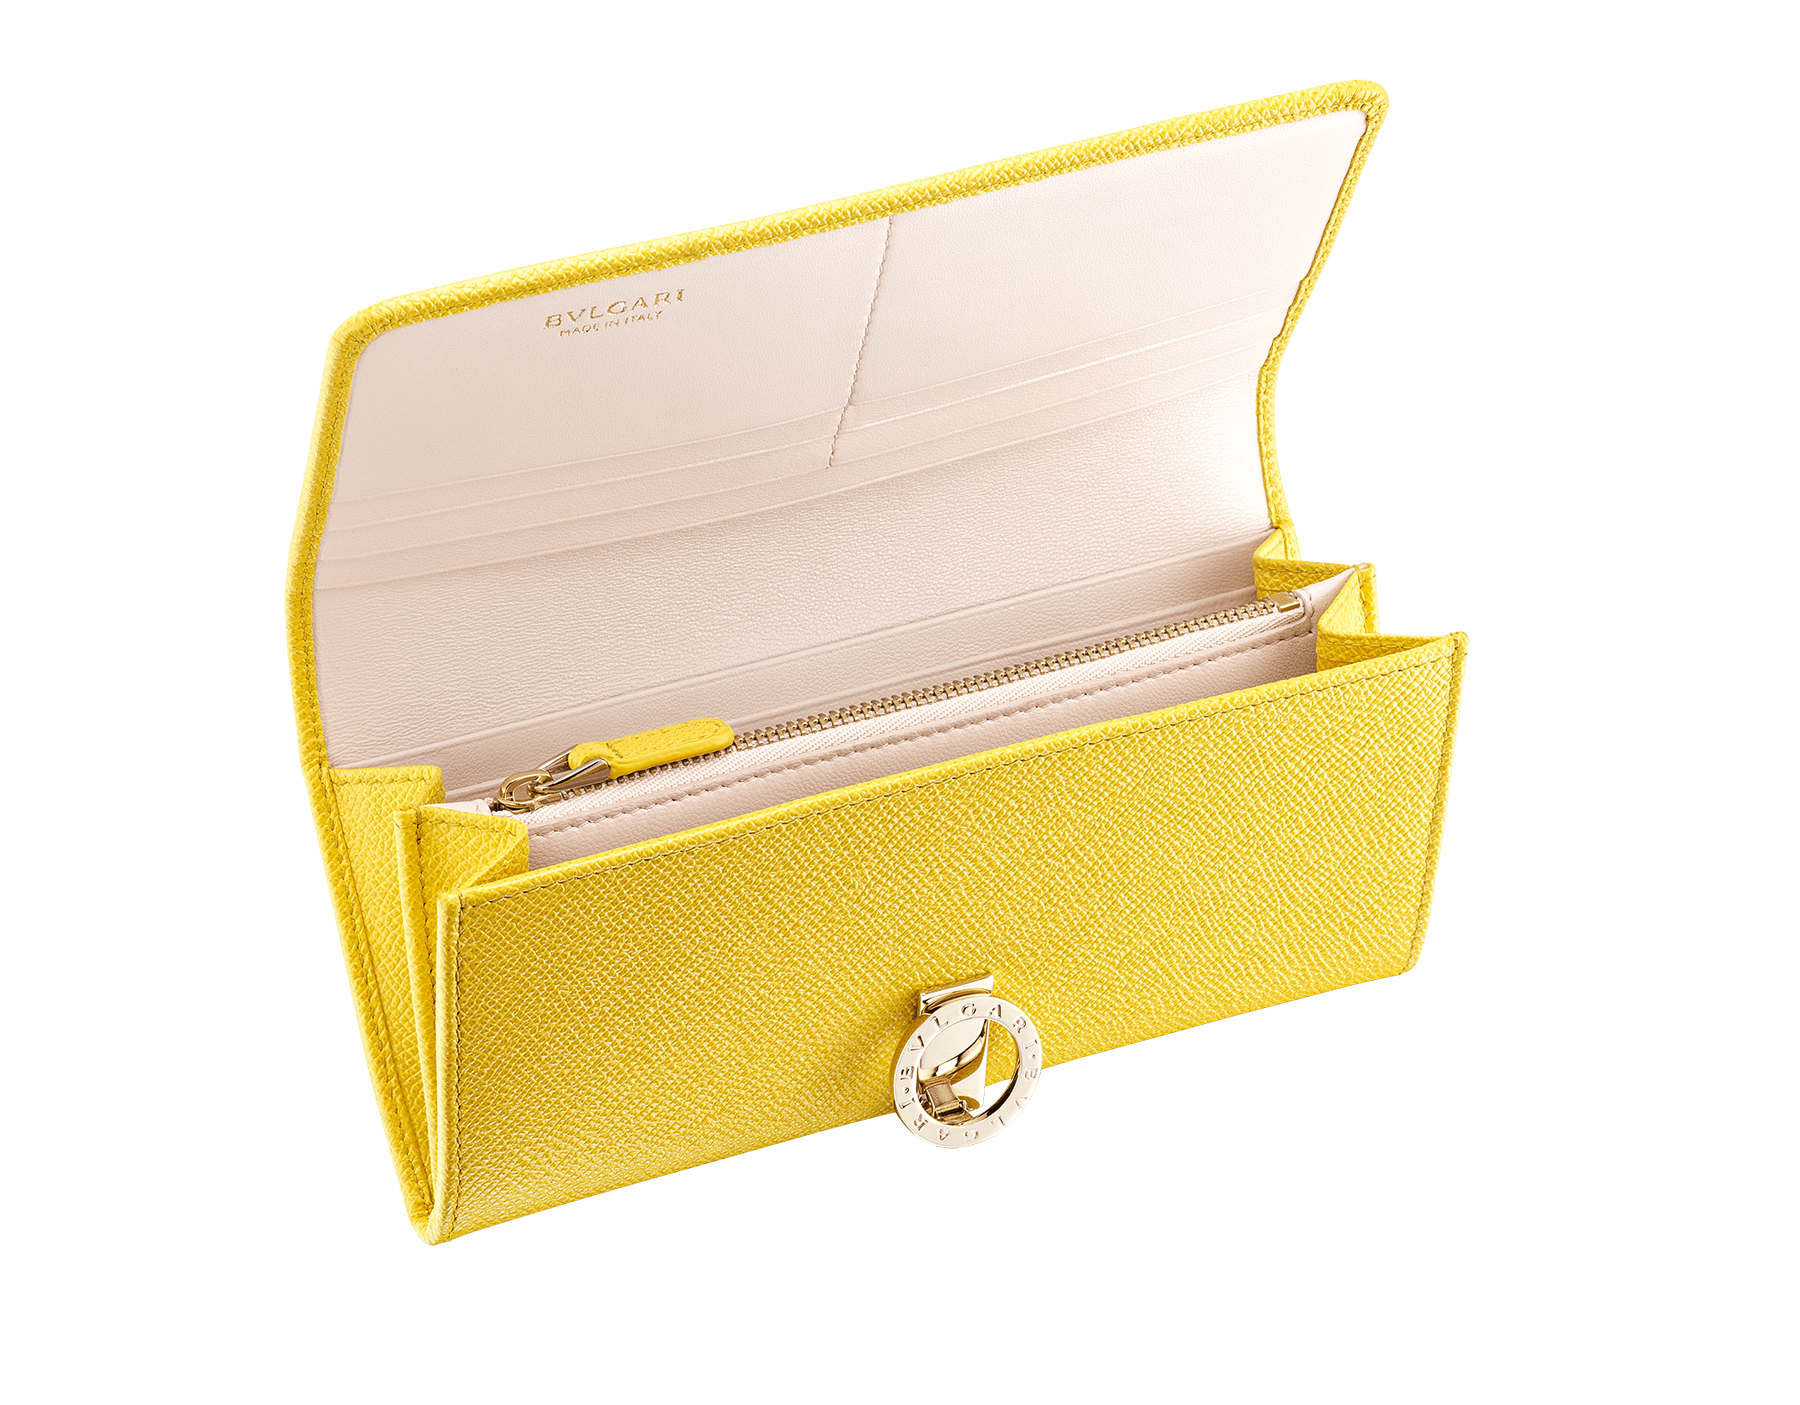 BVLGARI BVLGARI wallet pochette in daisy topaz grain calf leather and crystal rose nappa leather. Iconic logo clip closure in light gold plated brass. 289974 image 2